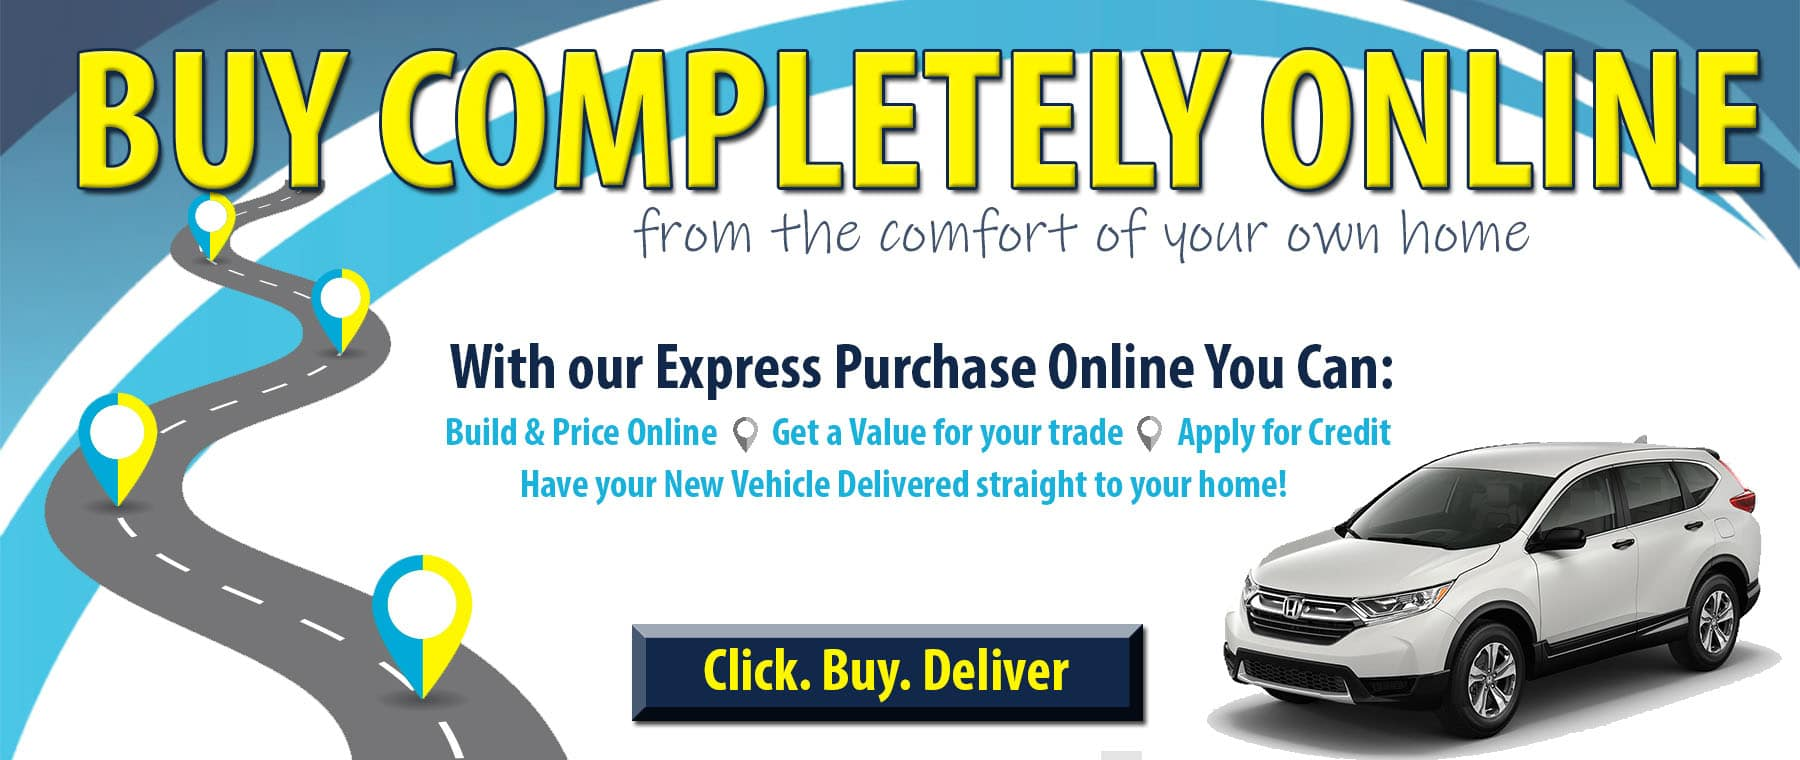 express-purchase-banner-opt